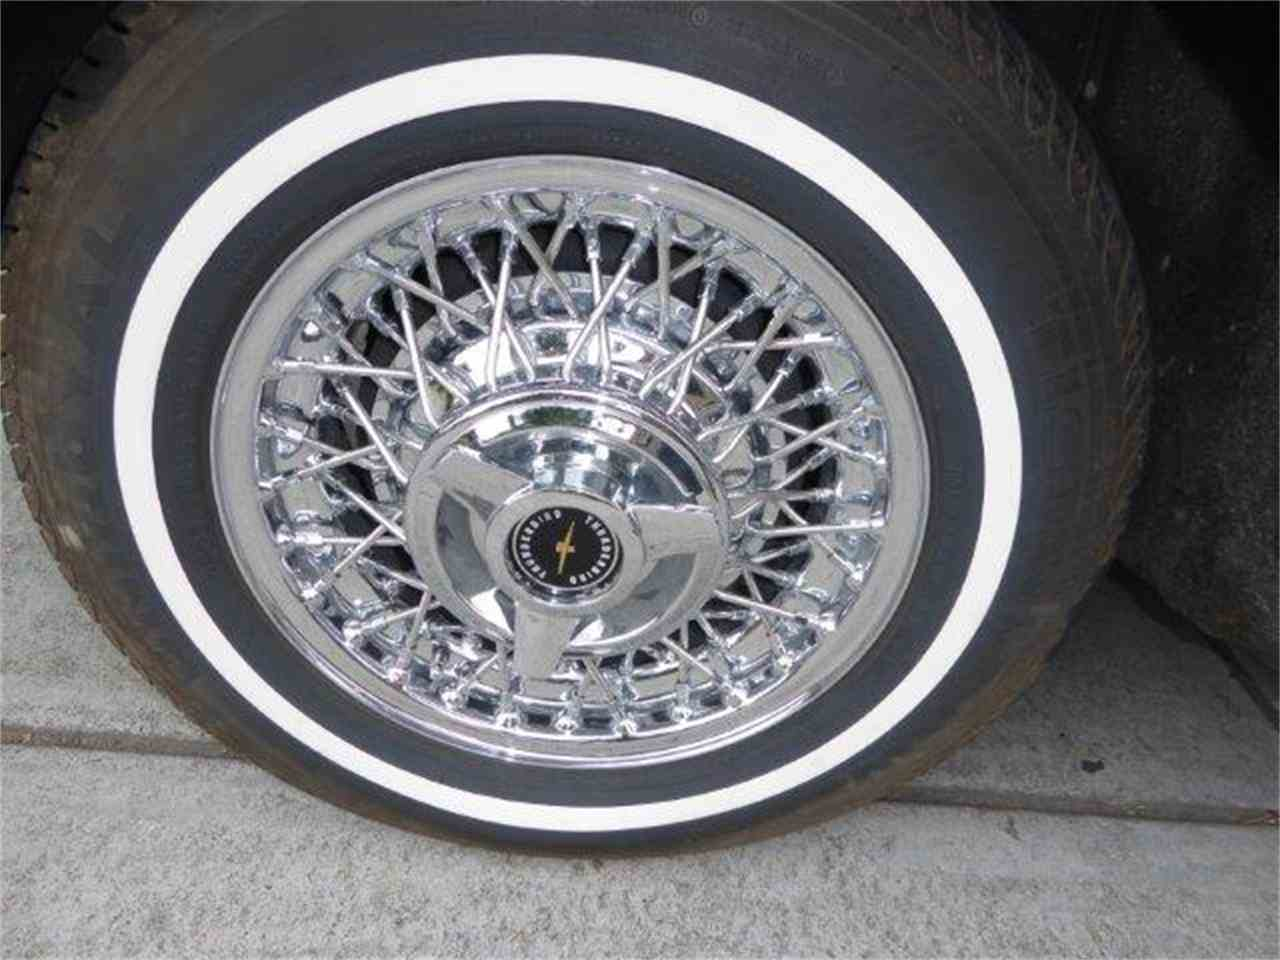 Large Picture of 1964 Ford Thunderbird - $29,500.00 - MH66